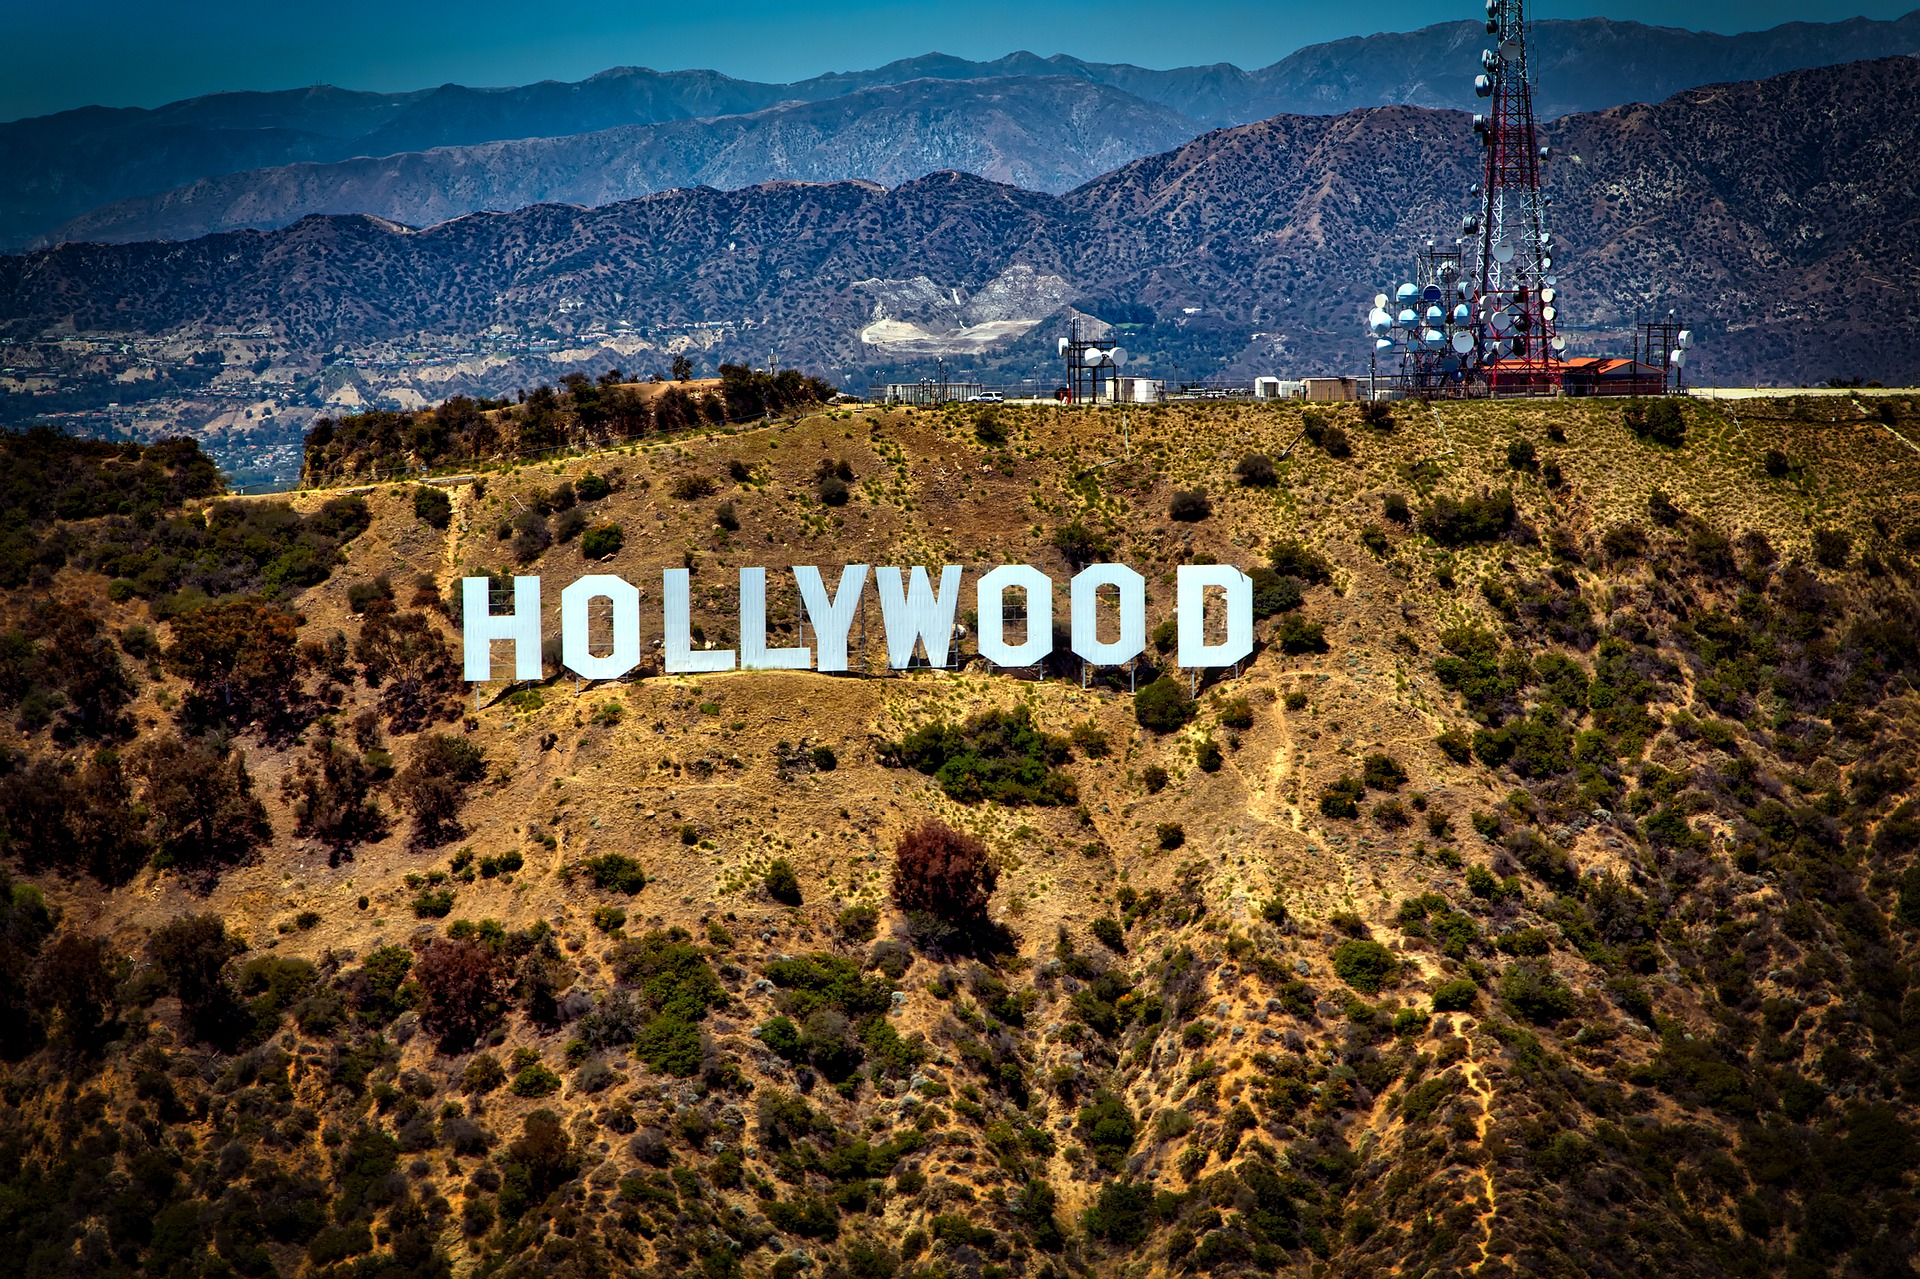 The Hollywood sign, Los Angeles